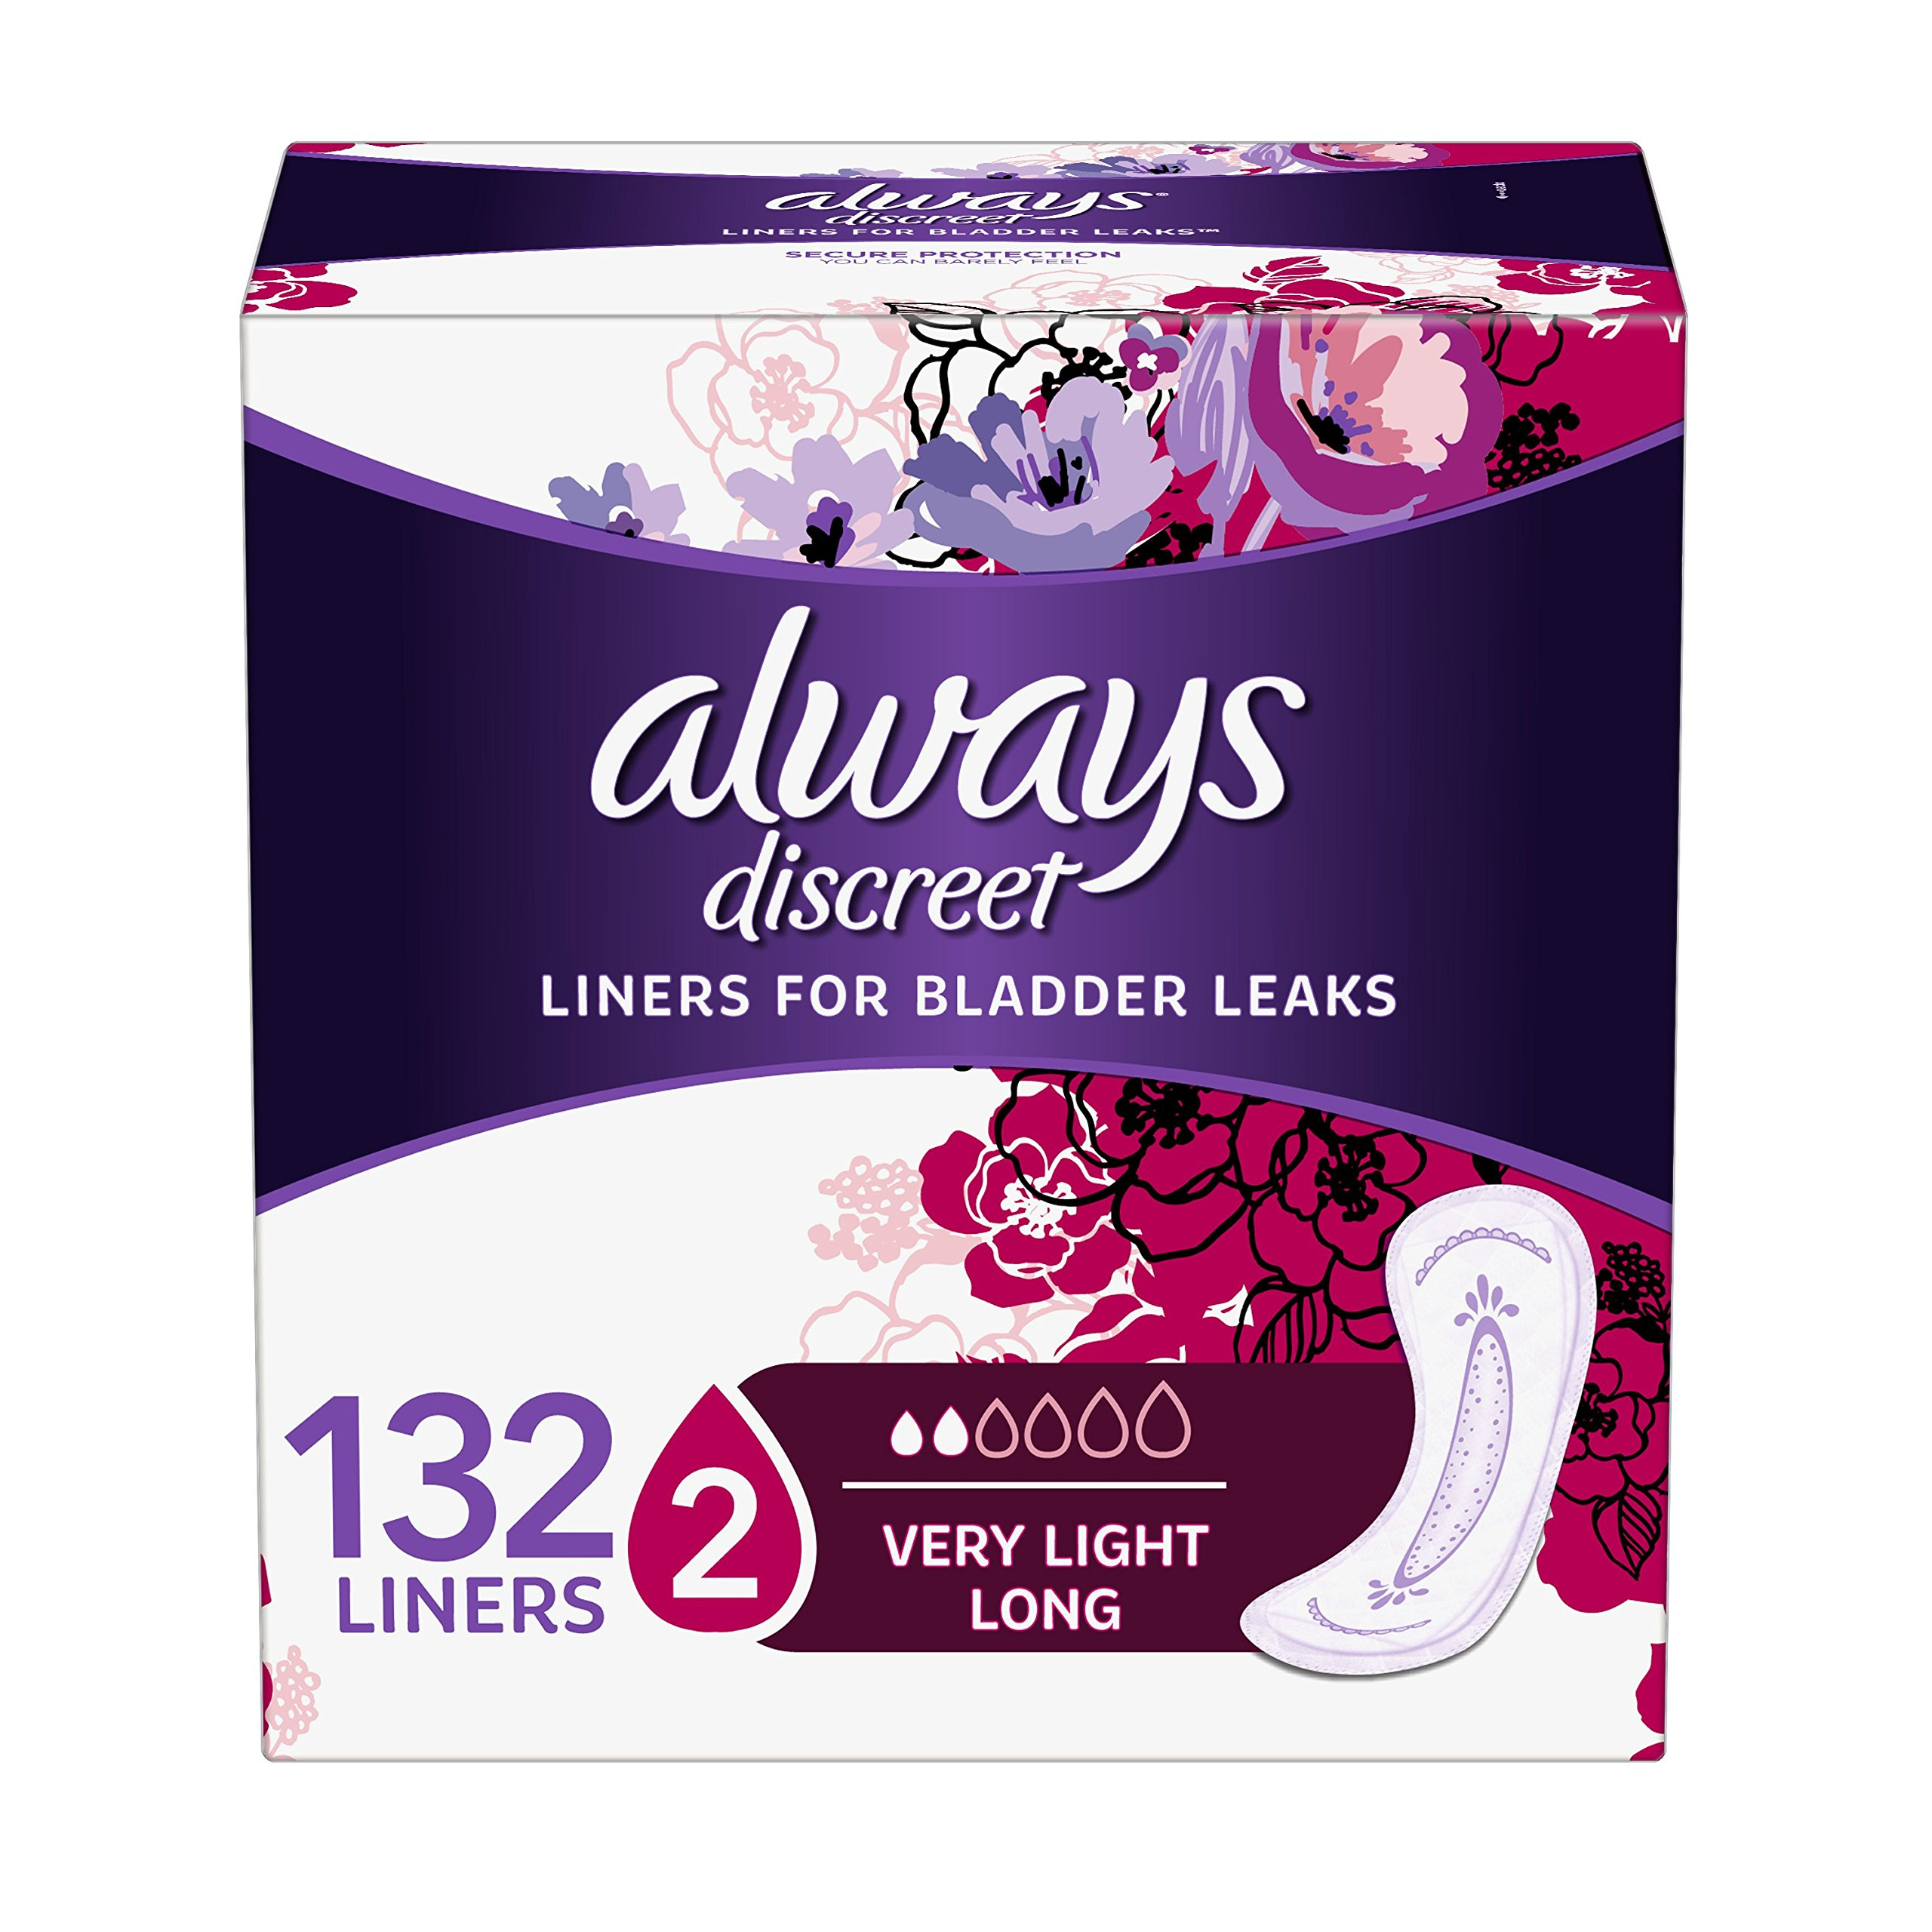 Always Discreet, Incontinence Liners, Very Light, Long Length, 44 Count - Pack of 3 (132 Total Count) by Always Discreet (Image #1)